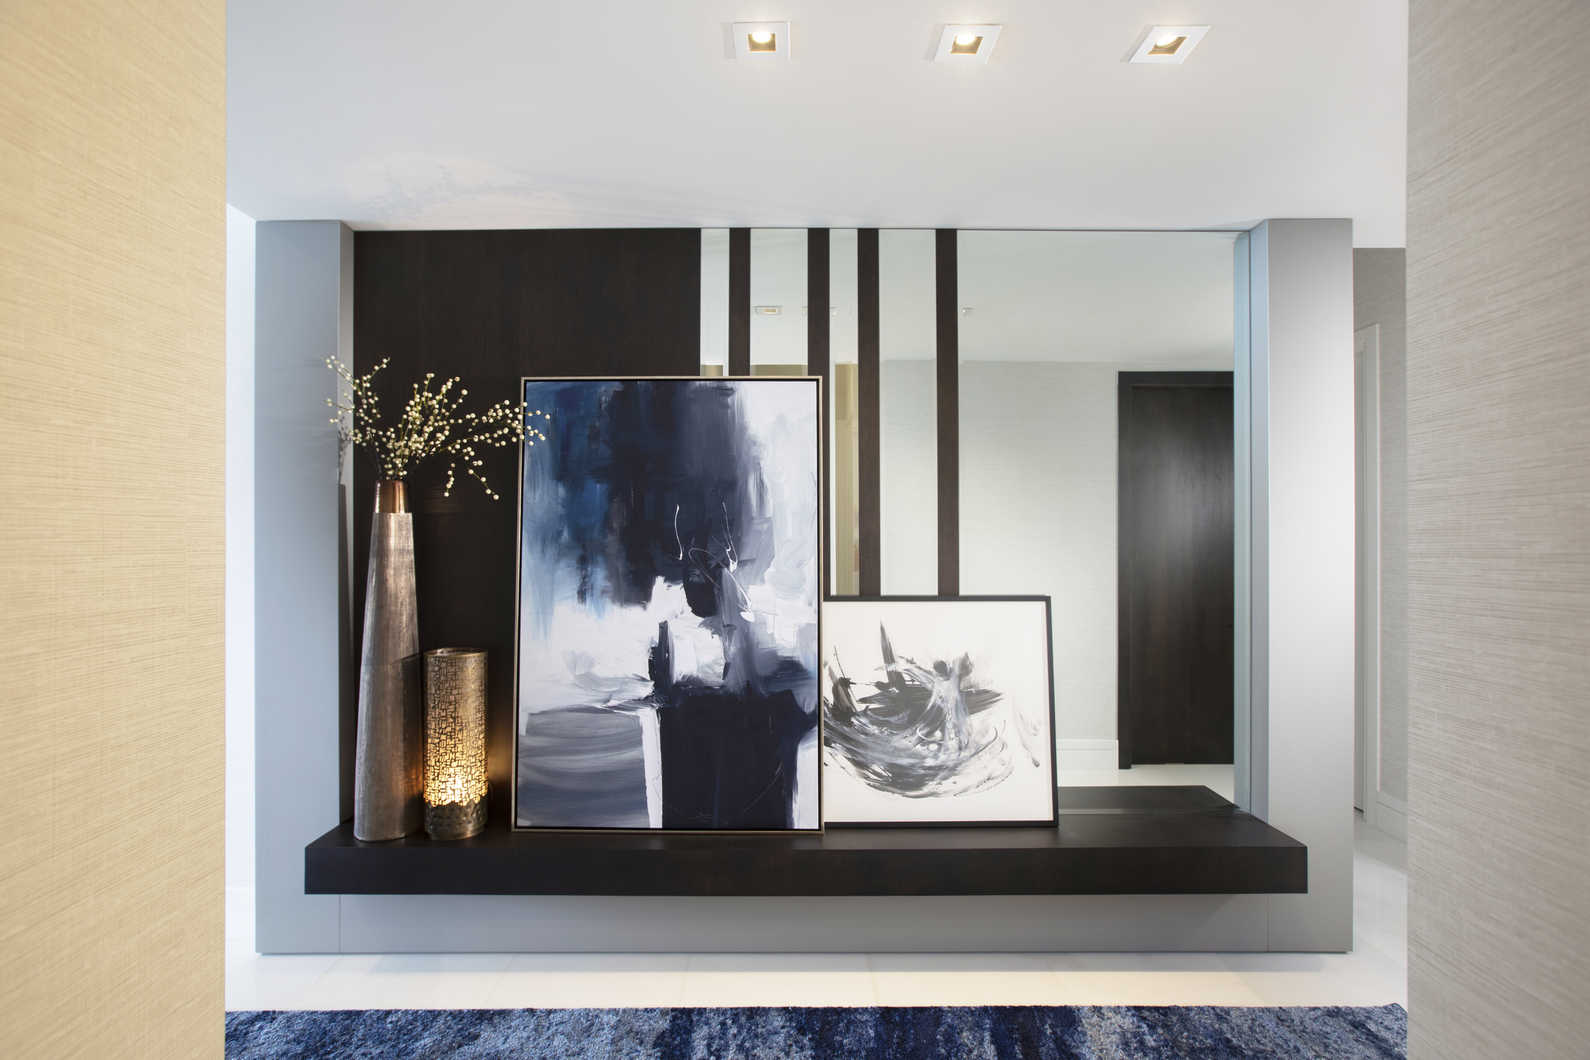 Luxe Interieur Design : Luxe waterfront condo residential interior design from dkor